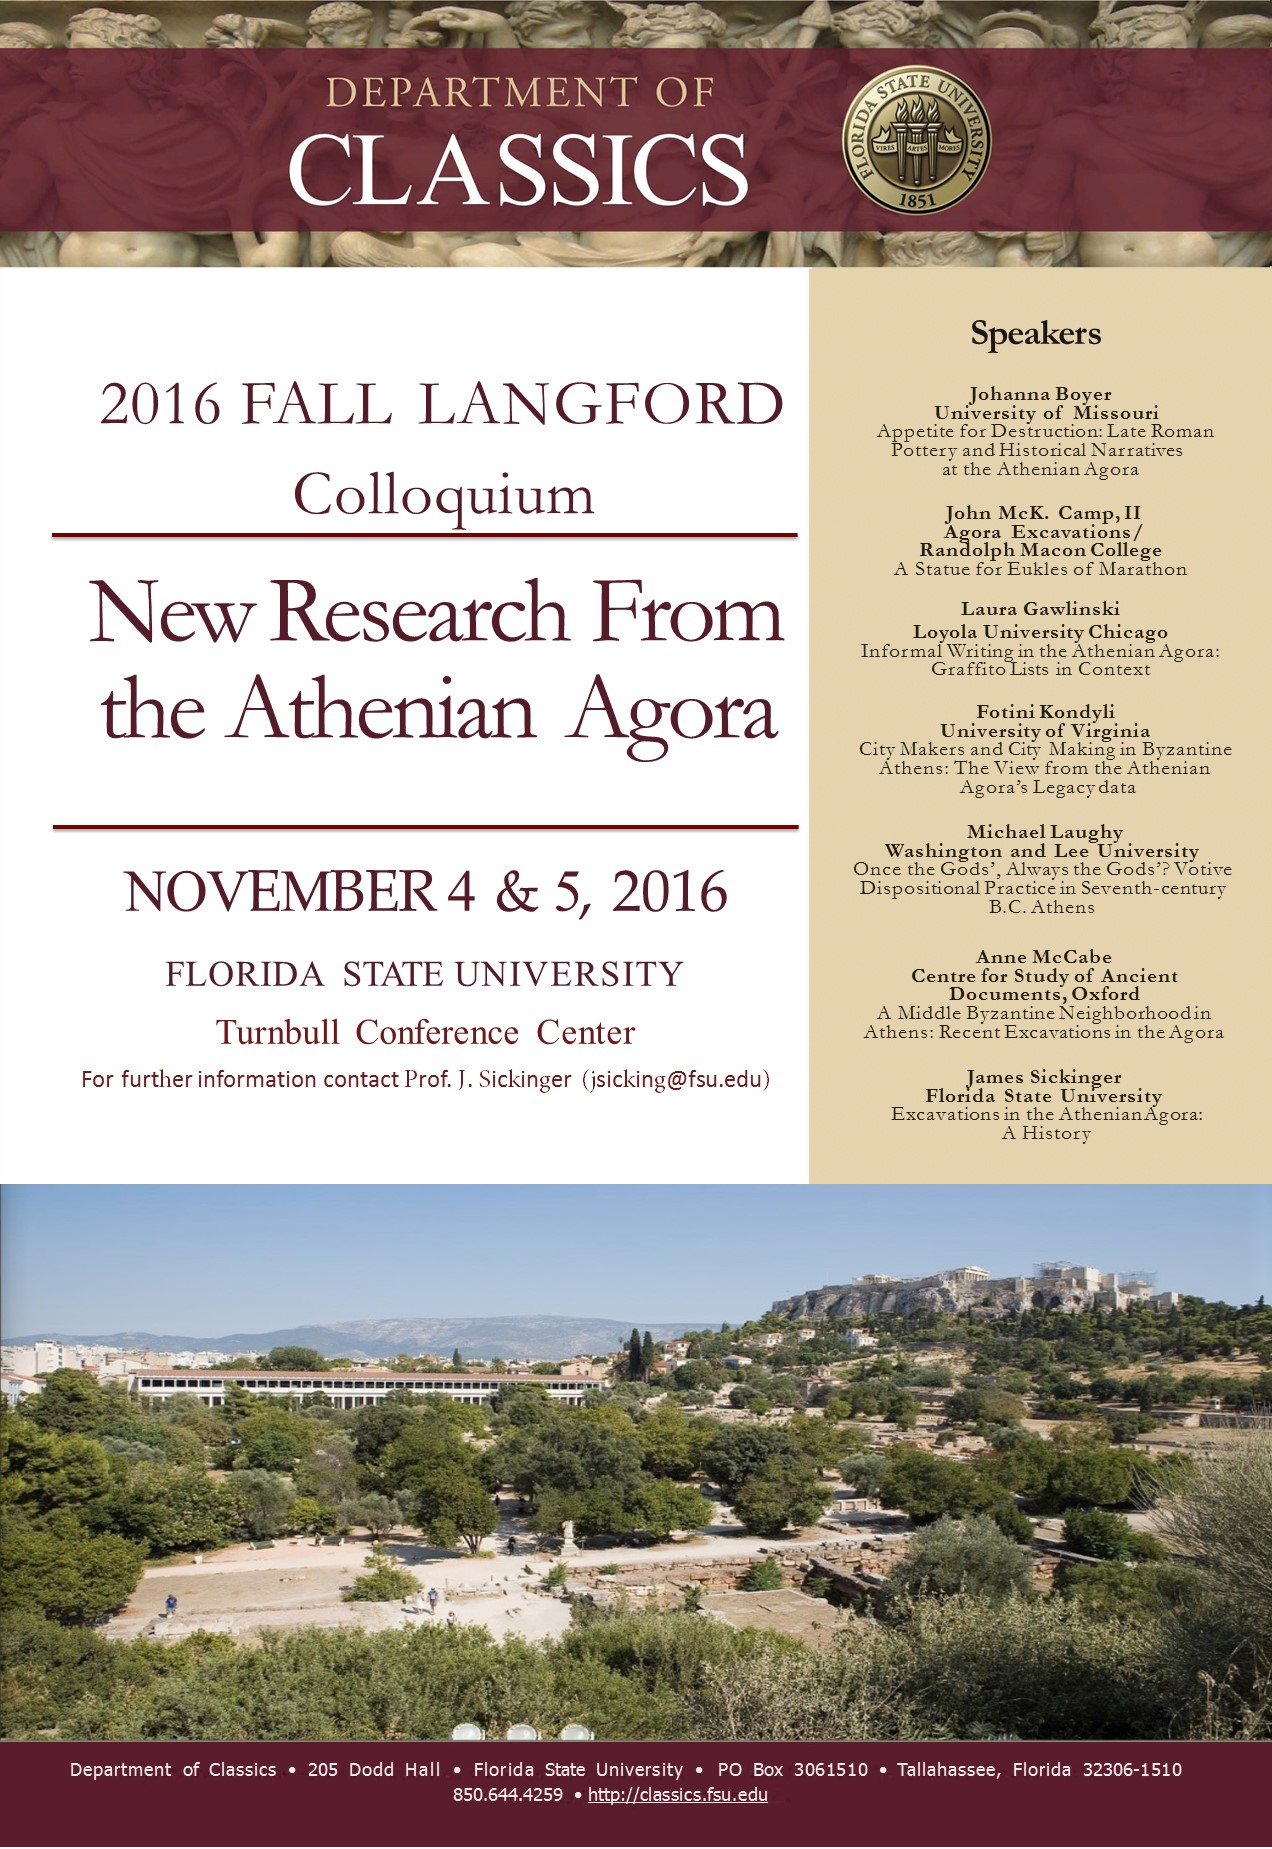 Langford 2016 fall poster rev-4.jpg